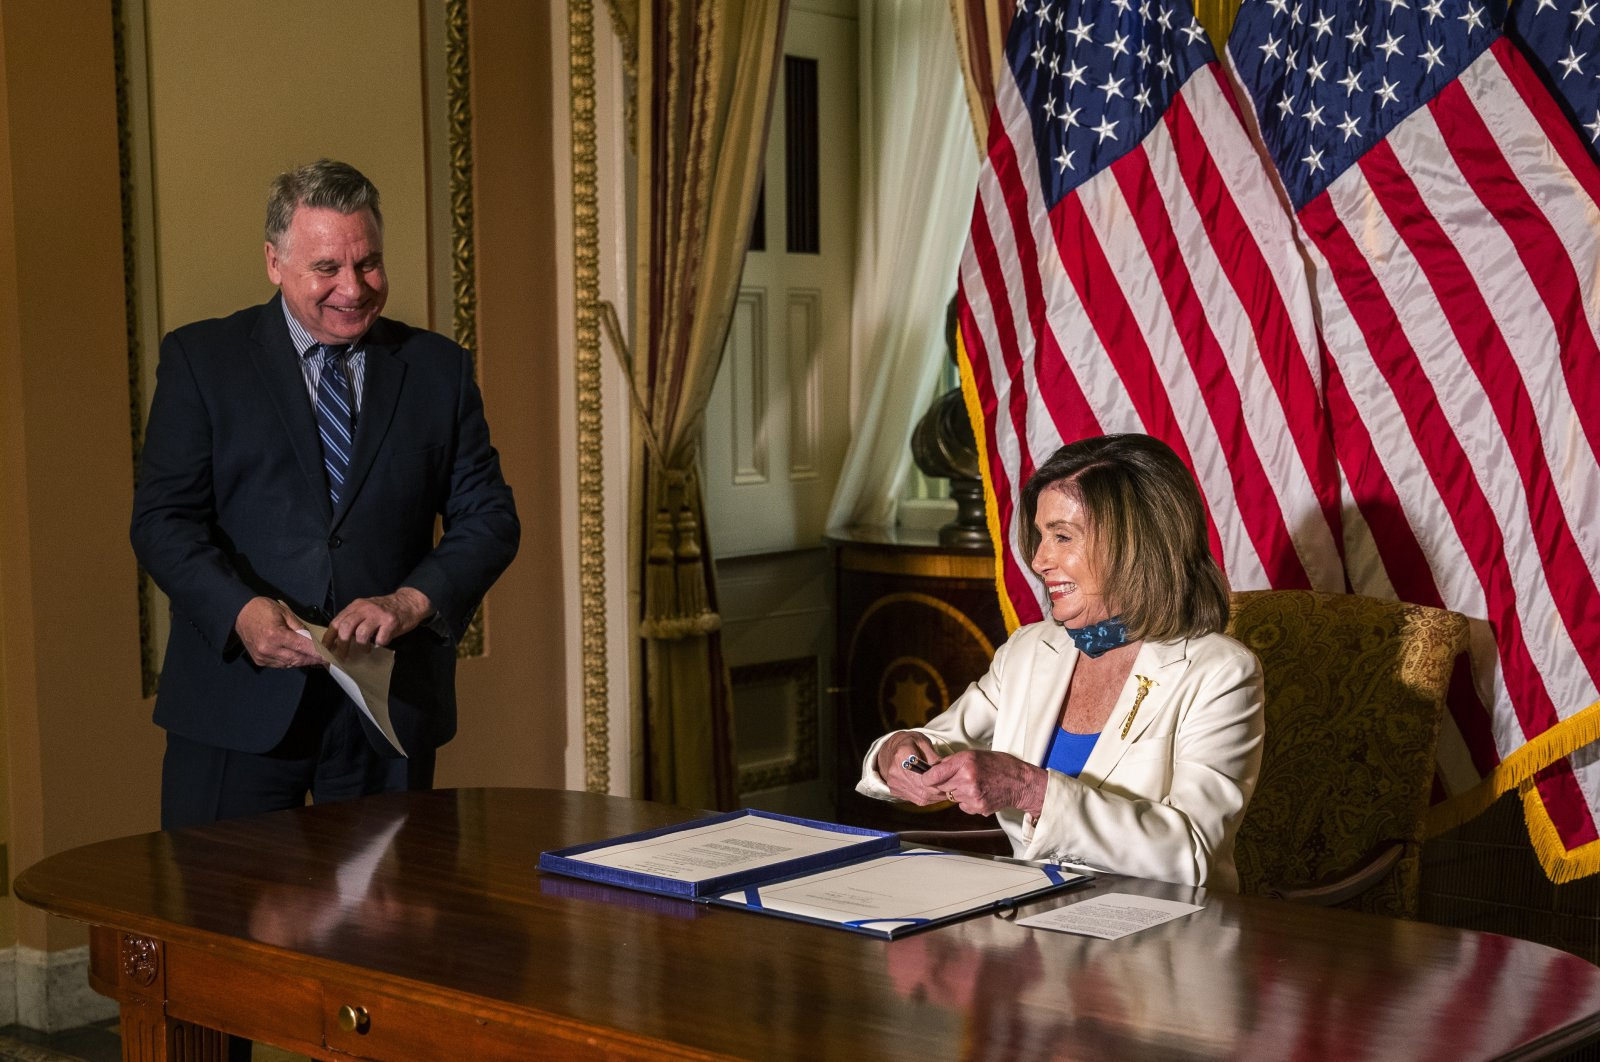 House Speaker Nancy Pelosi of Calif., talks to Rep. Chris Smith, R-N.J. (L) after signing the Uighur Human Rights Policy Act at the Capitol in Washington, June 2, 2020. (AP Photo)